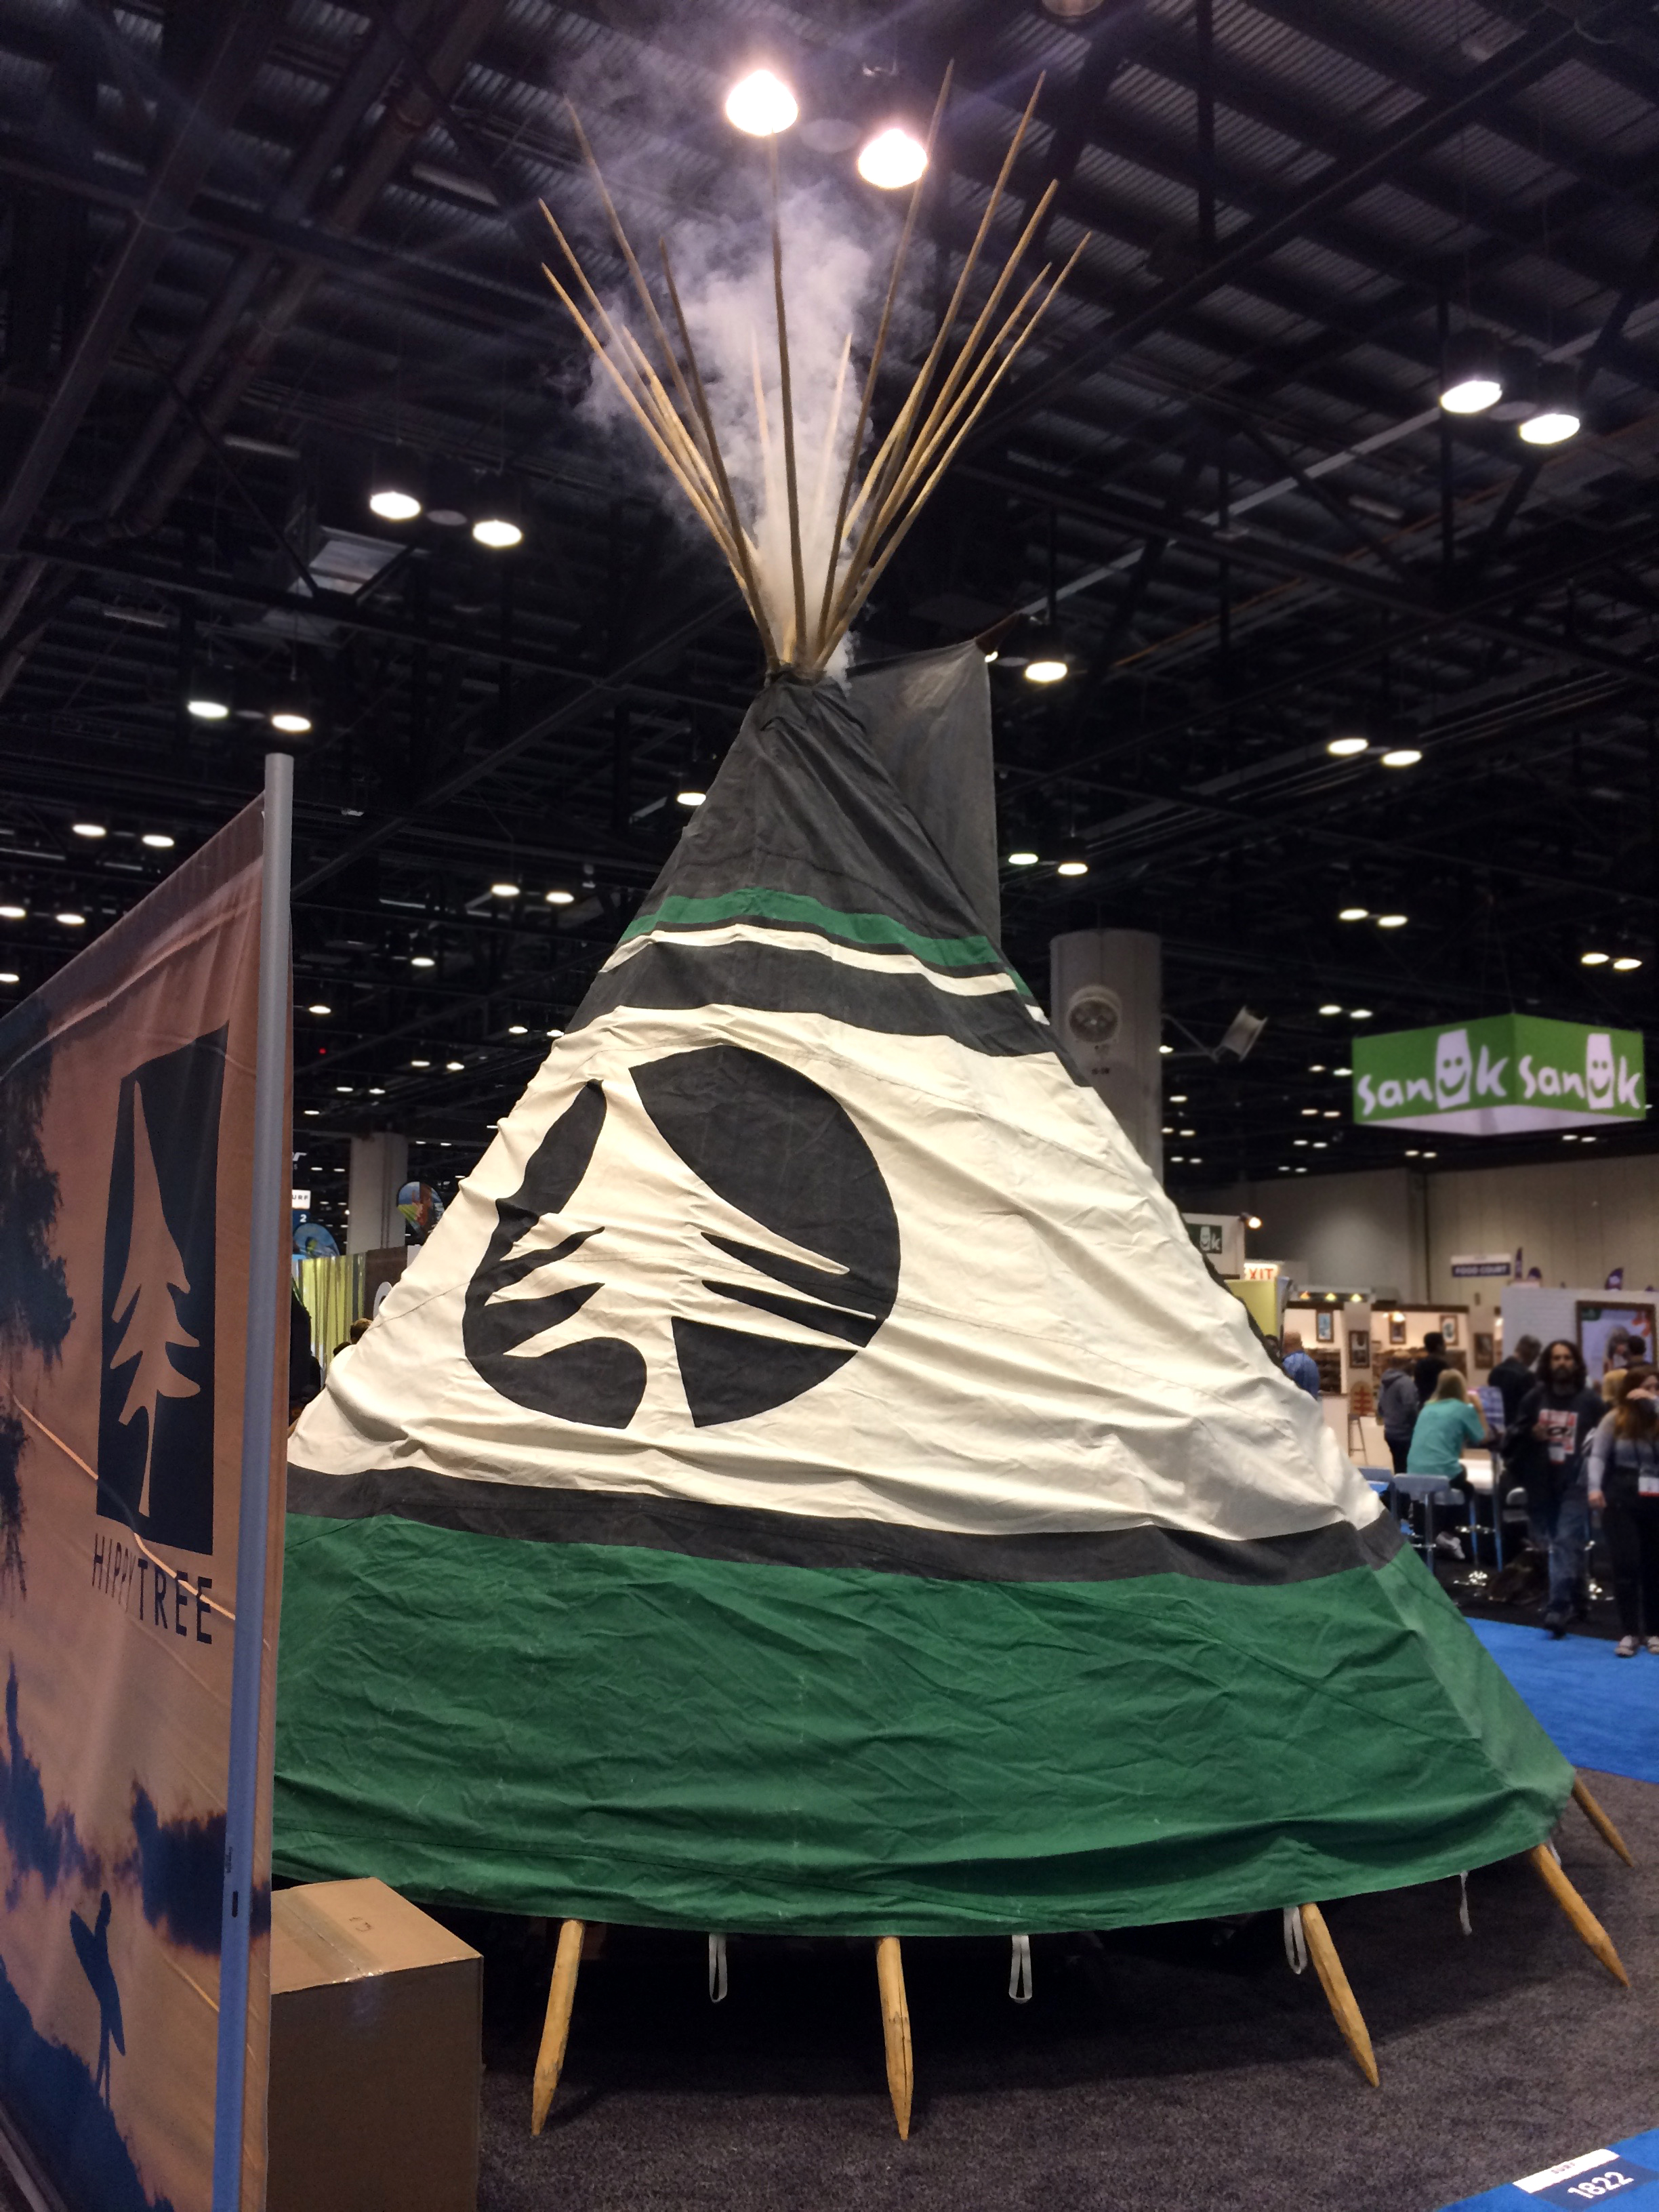 The Hippy Tree booth featured a giant teepee